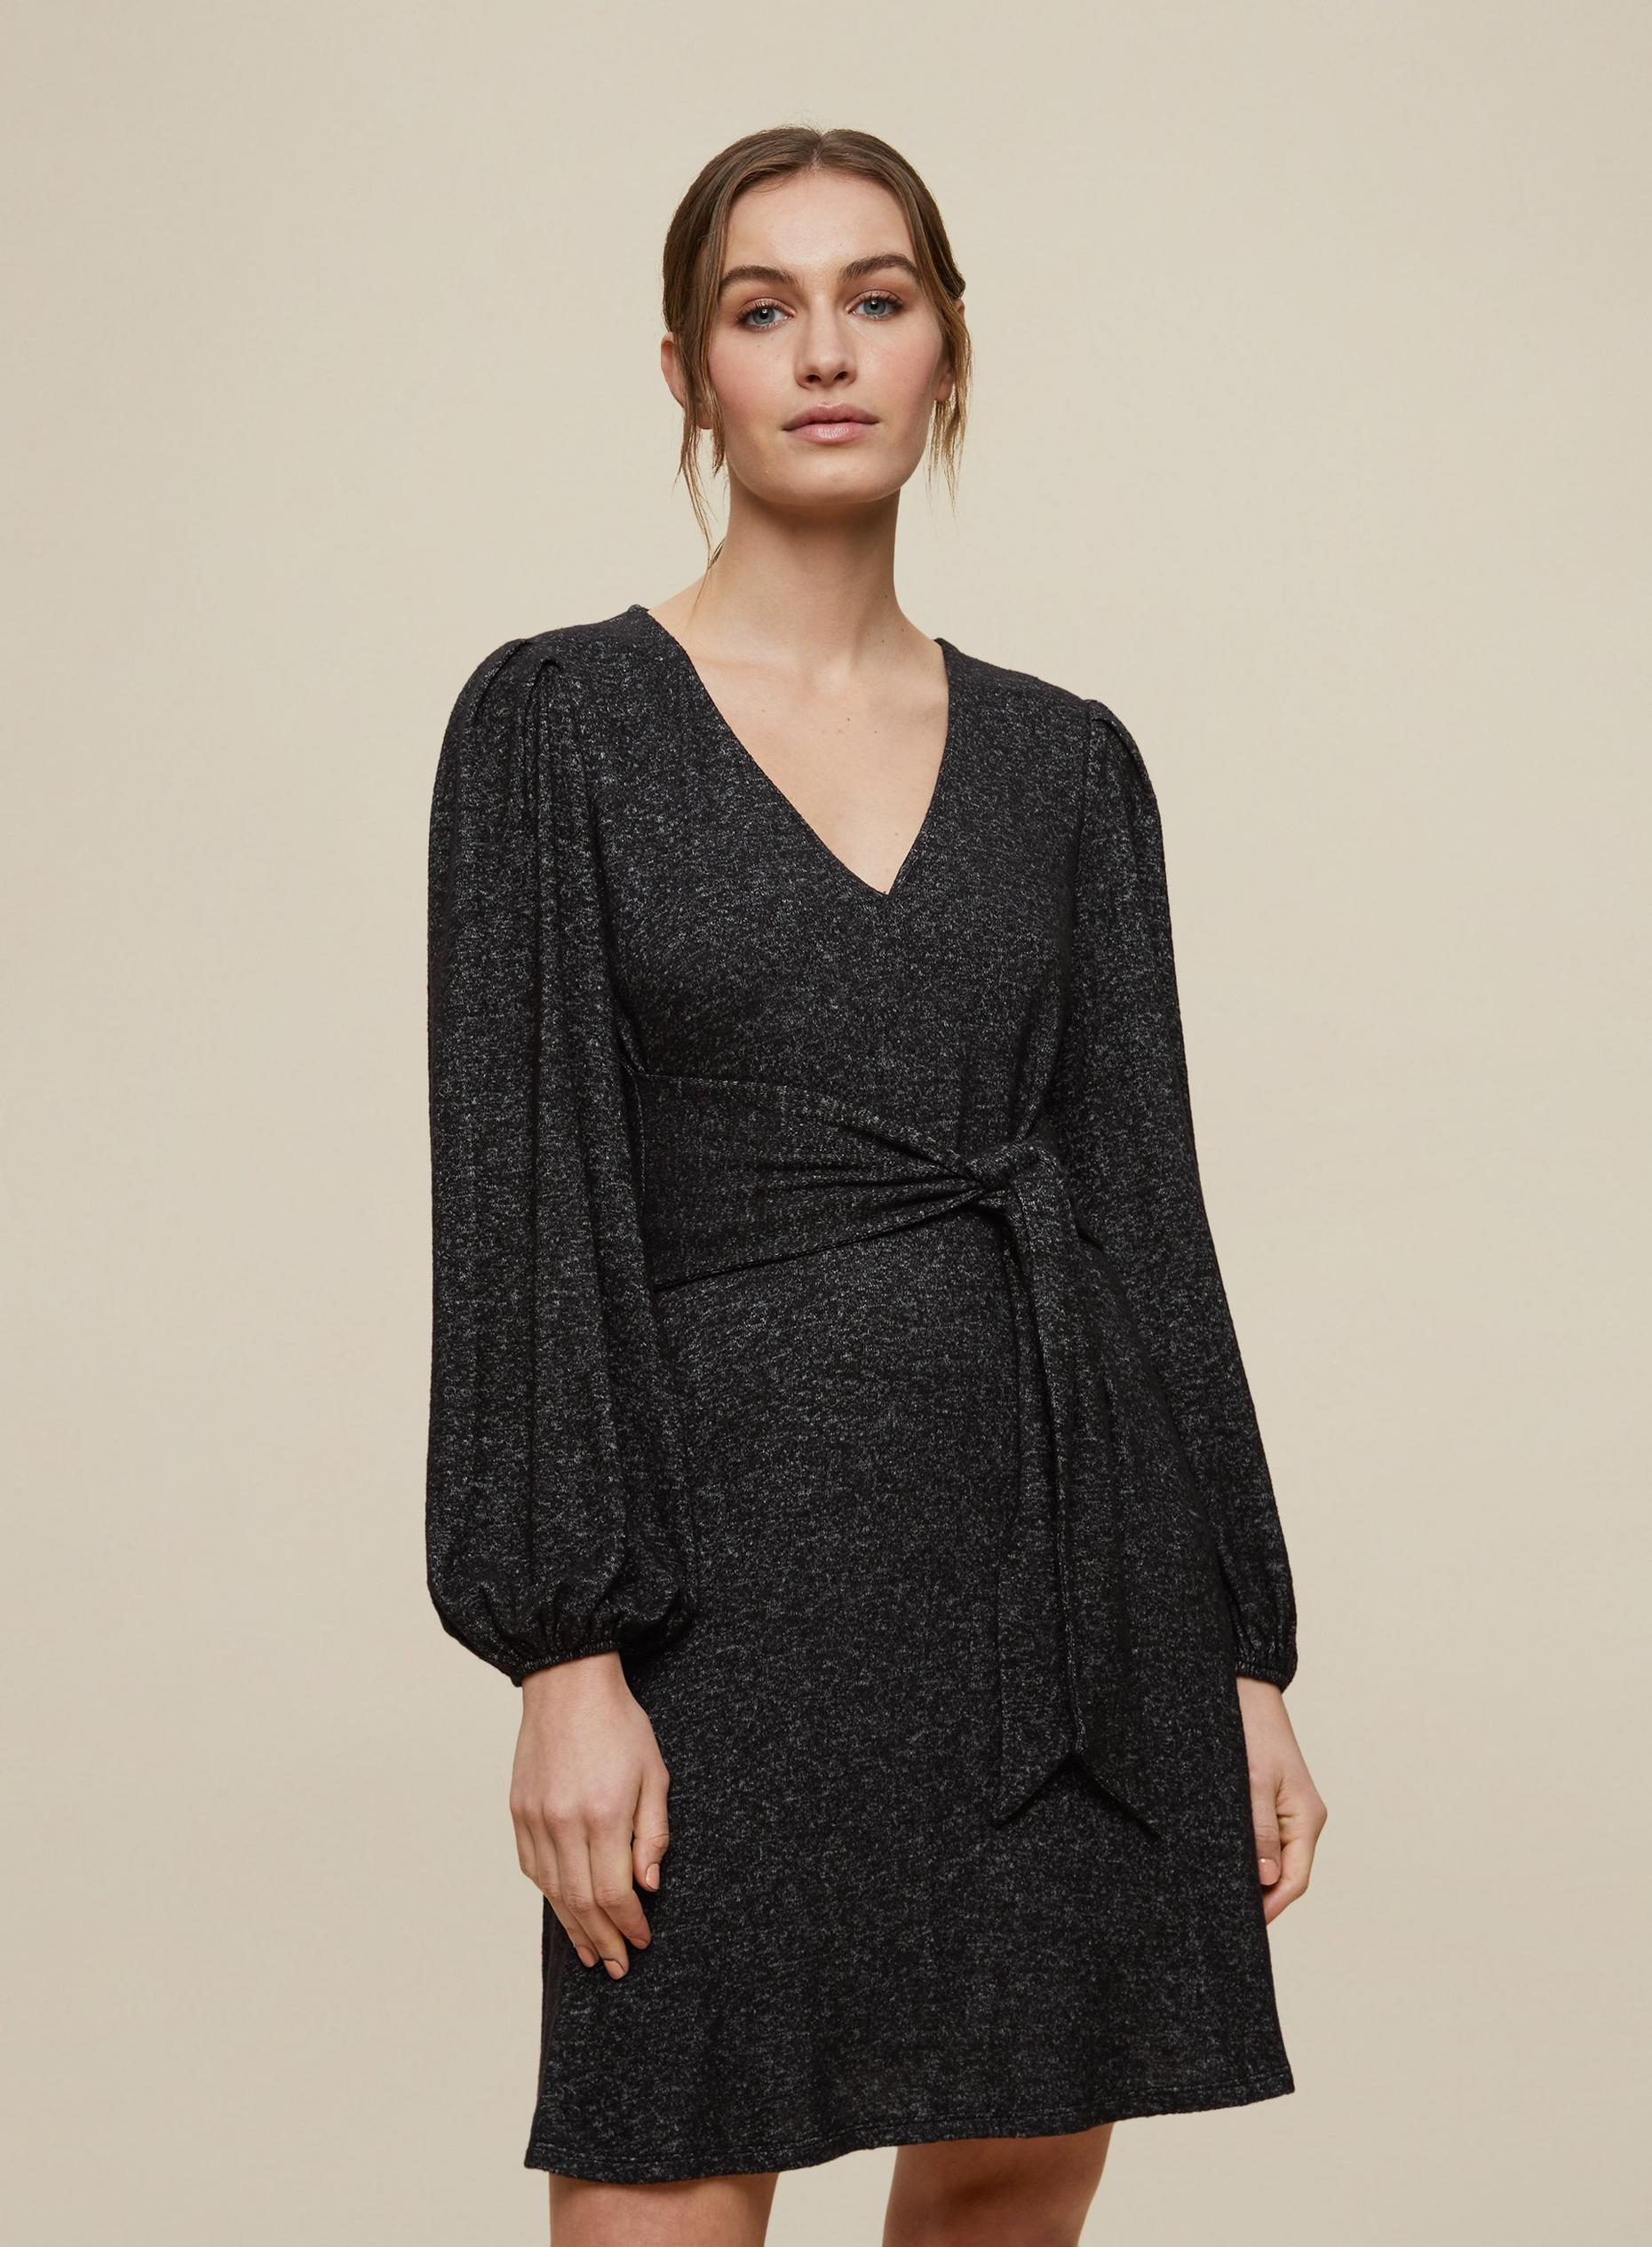 Charcoal Marl Soft Touch Dress